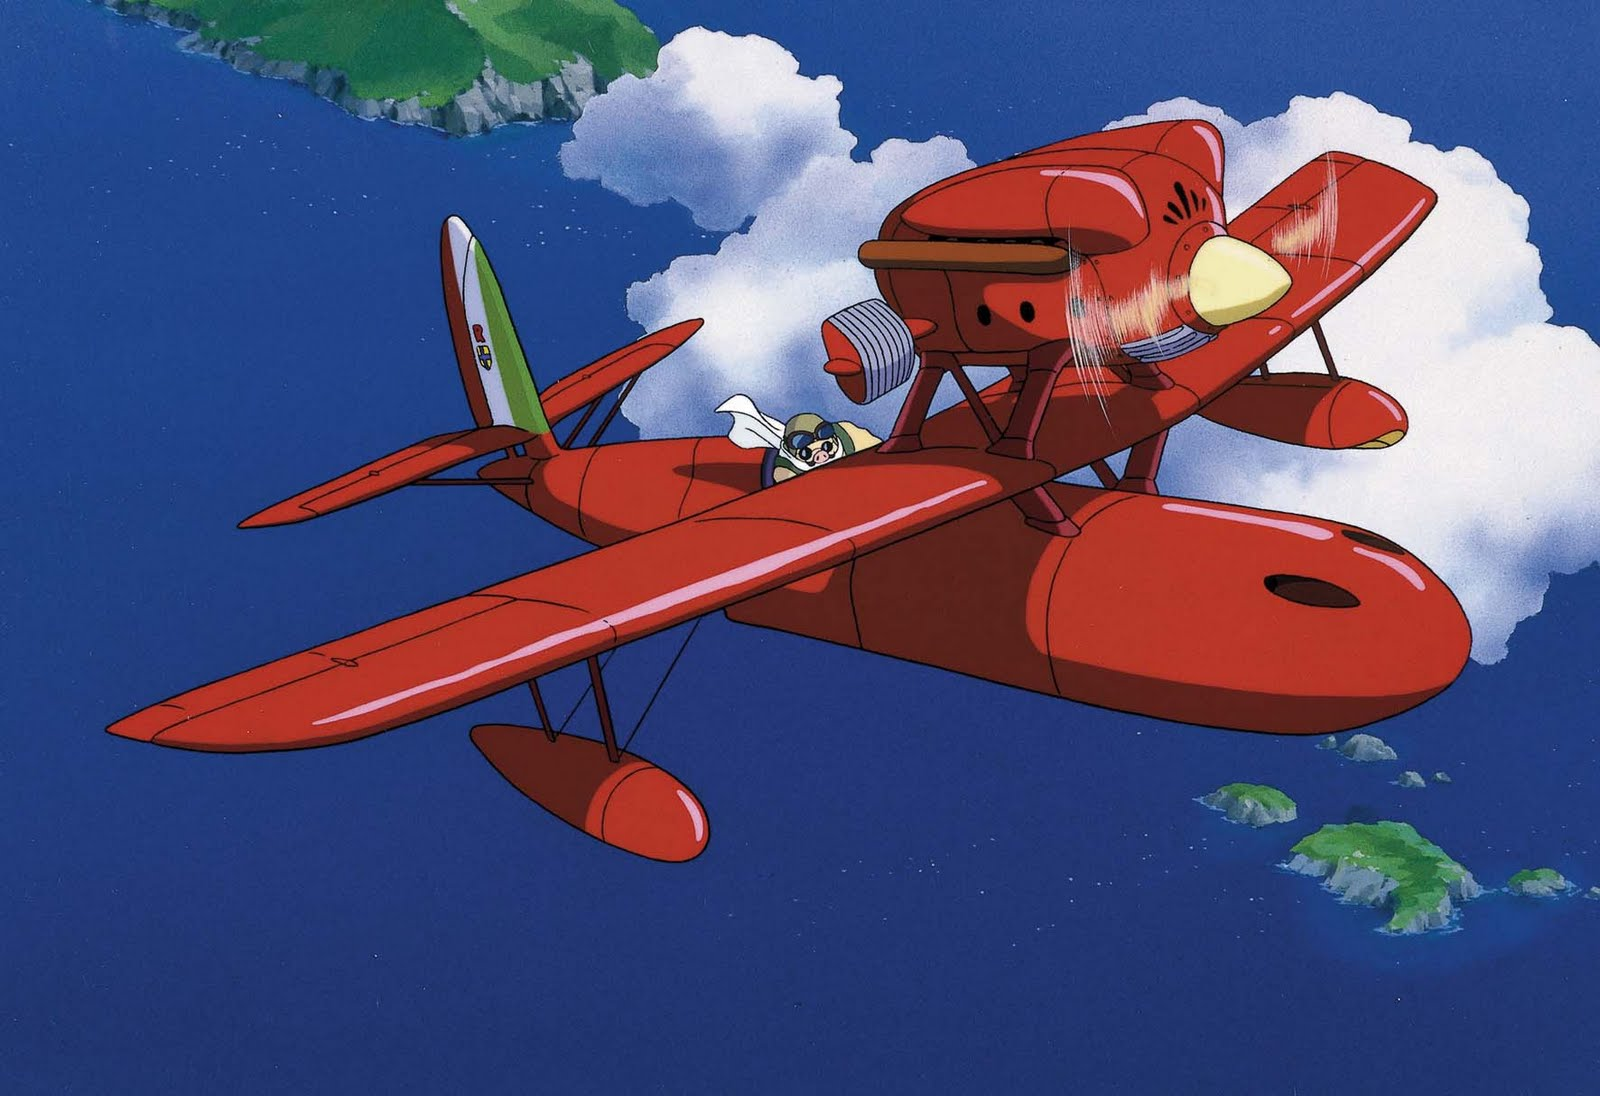 Practical Analysis of Studio Ghibli Film Aircraft: Porco Rosso Aircraft